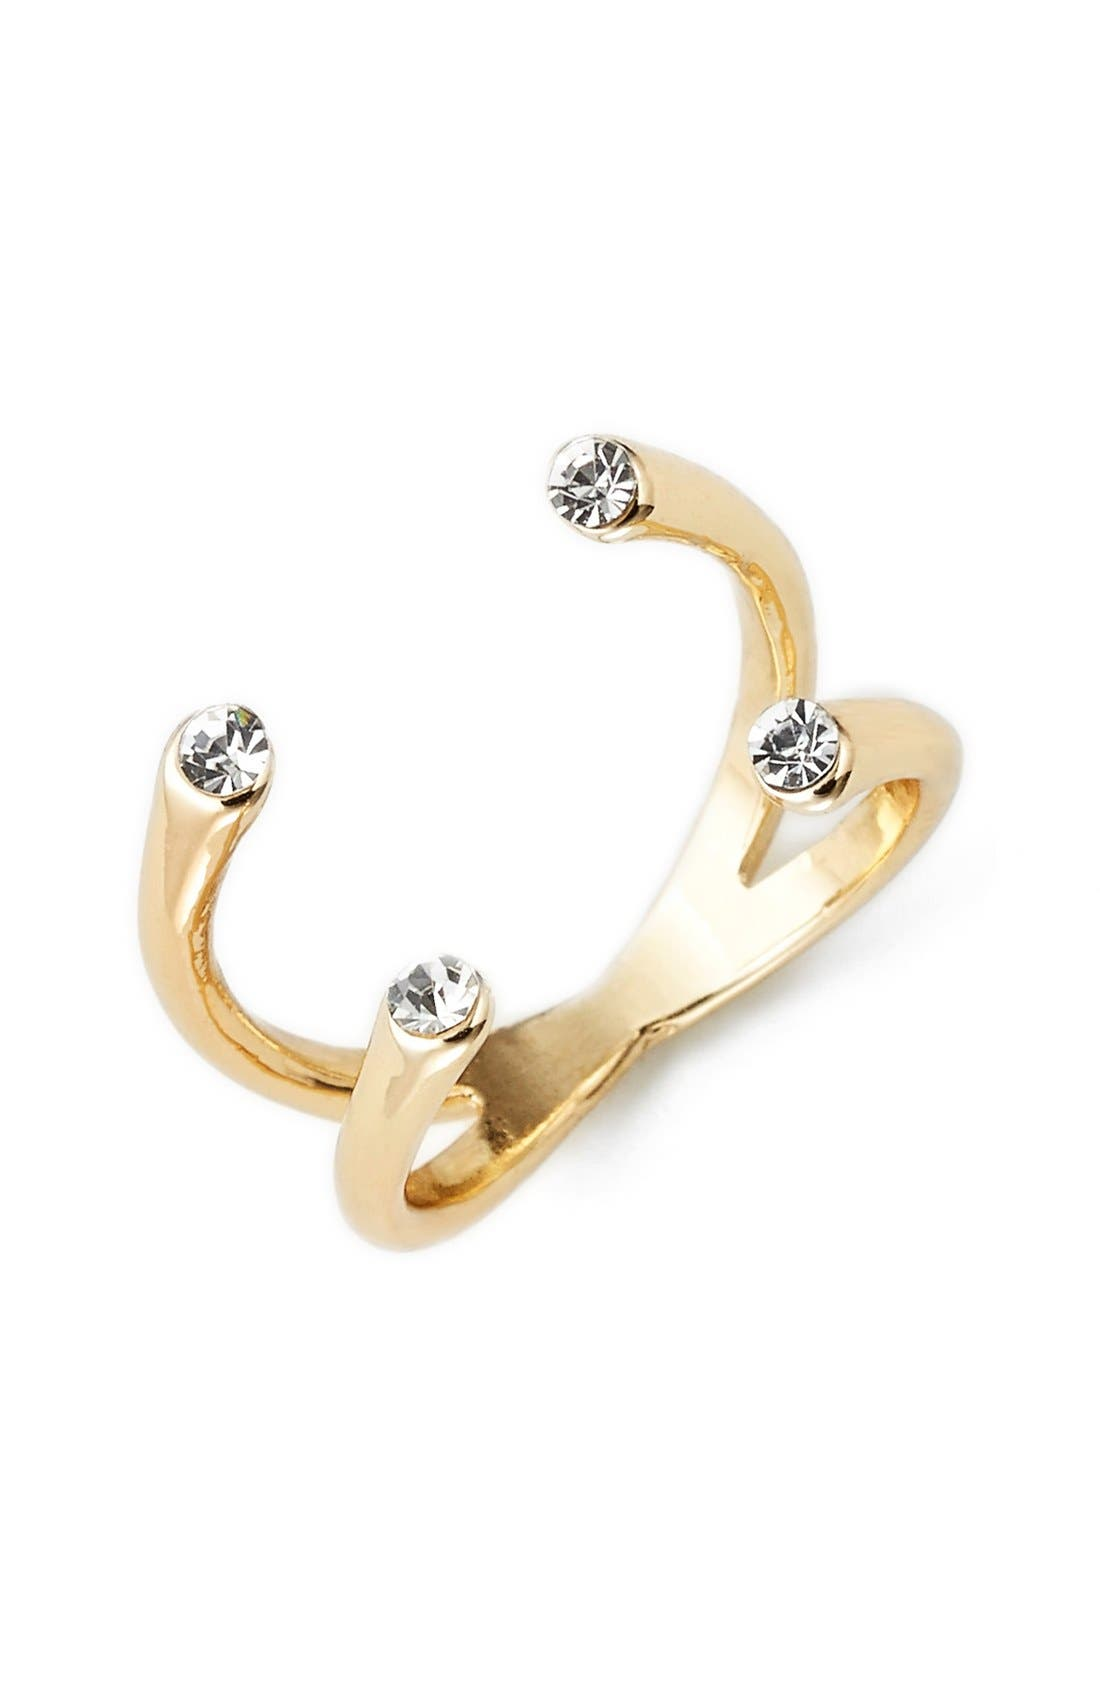 Main Image - Jules Smith Open Claw Ring